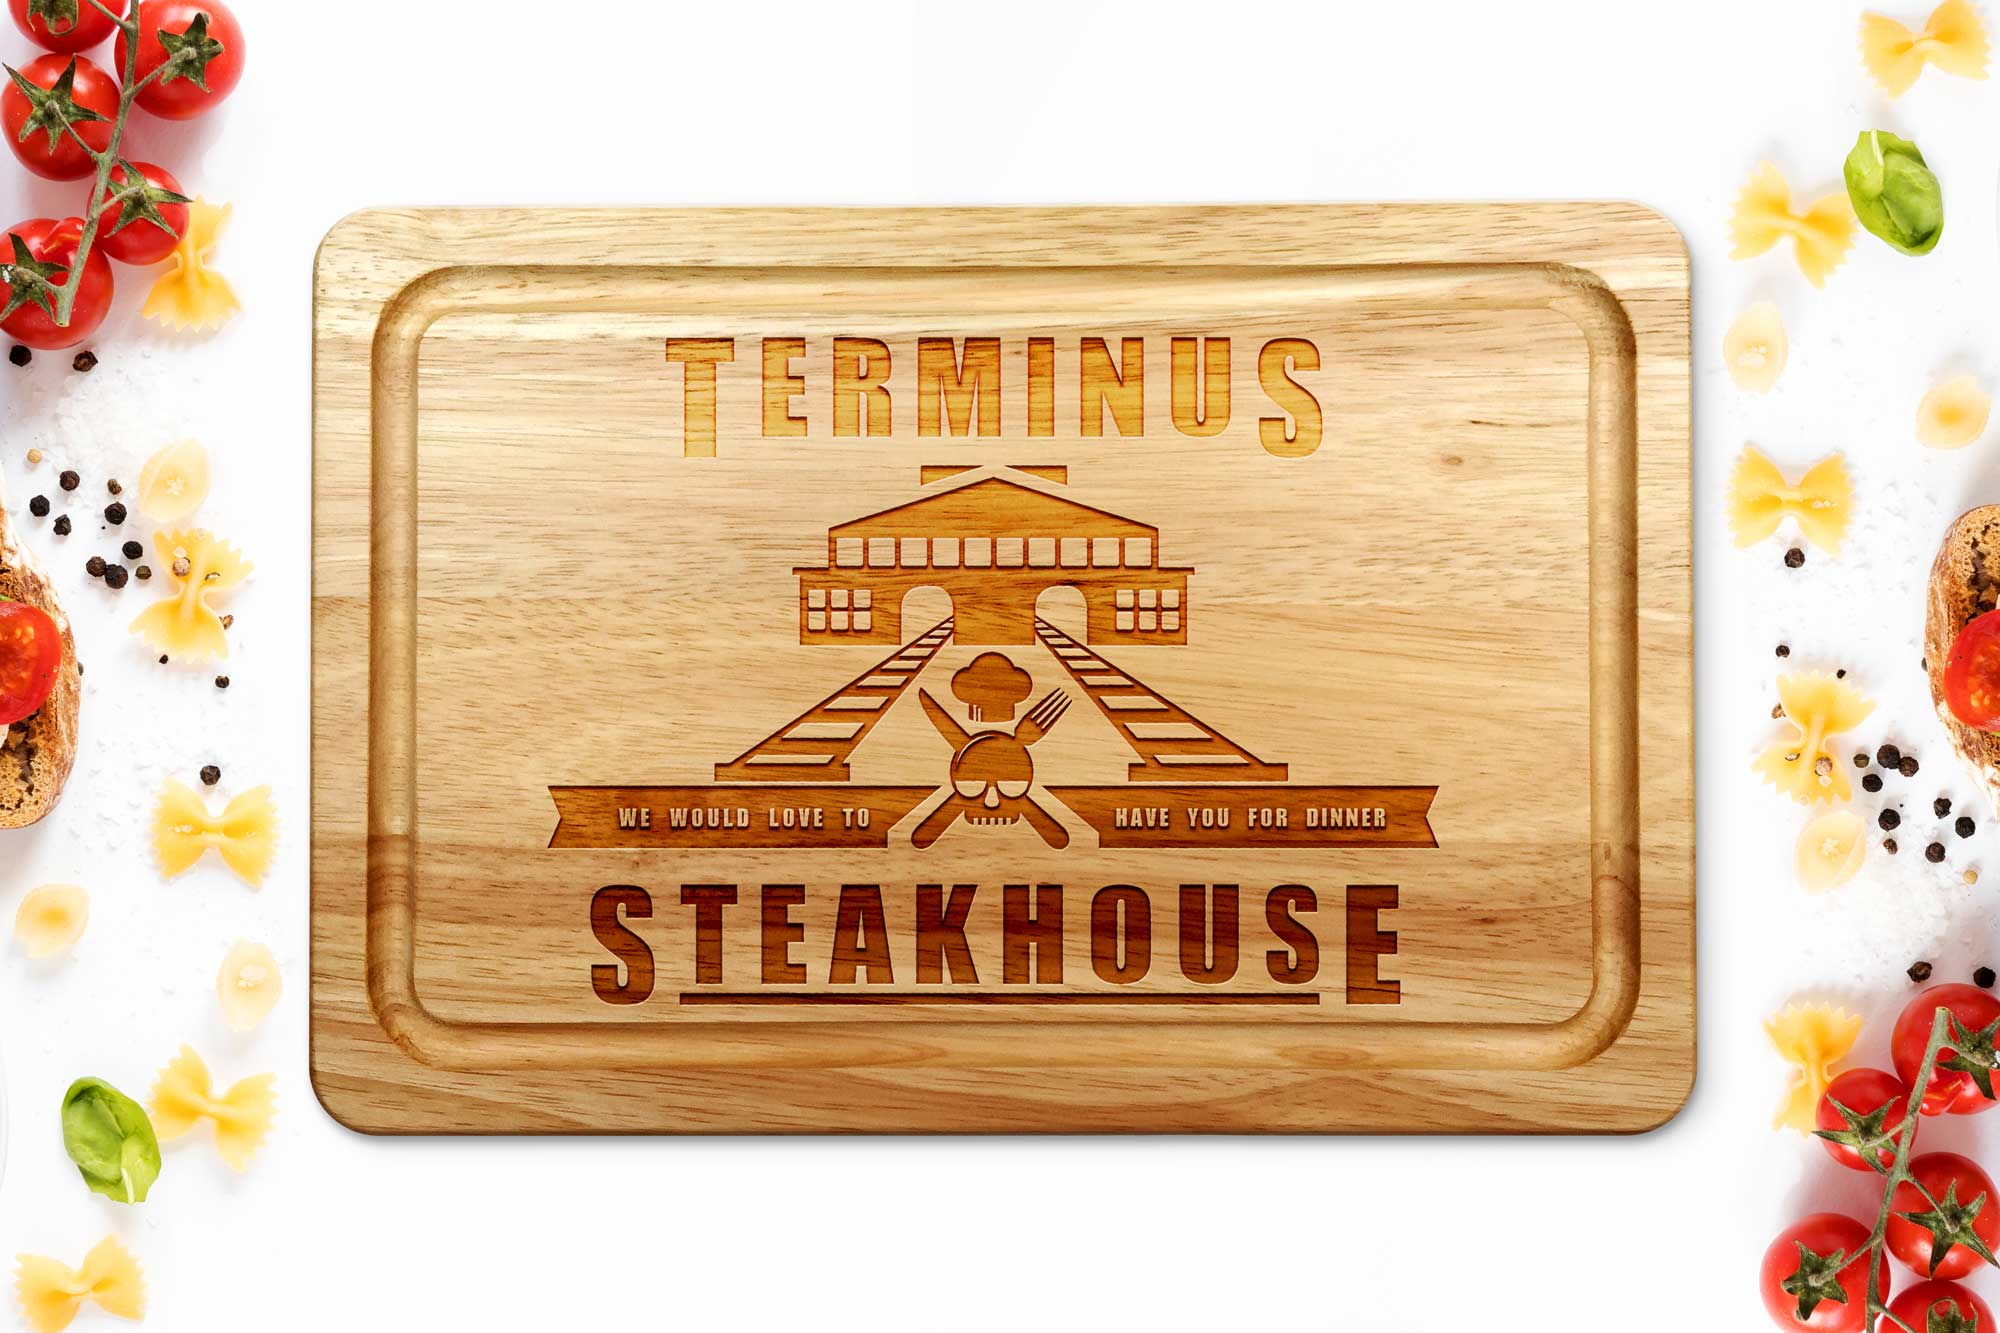 Terminus steakhouse chopping board on a white worktop